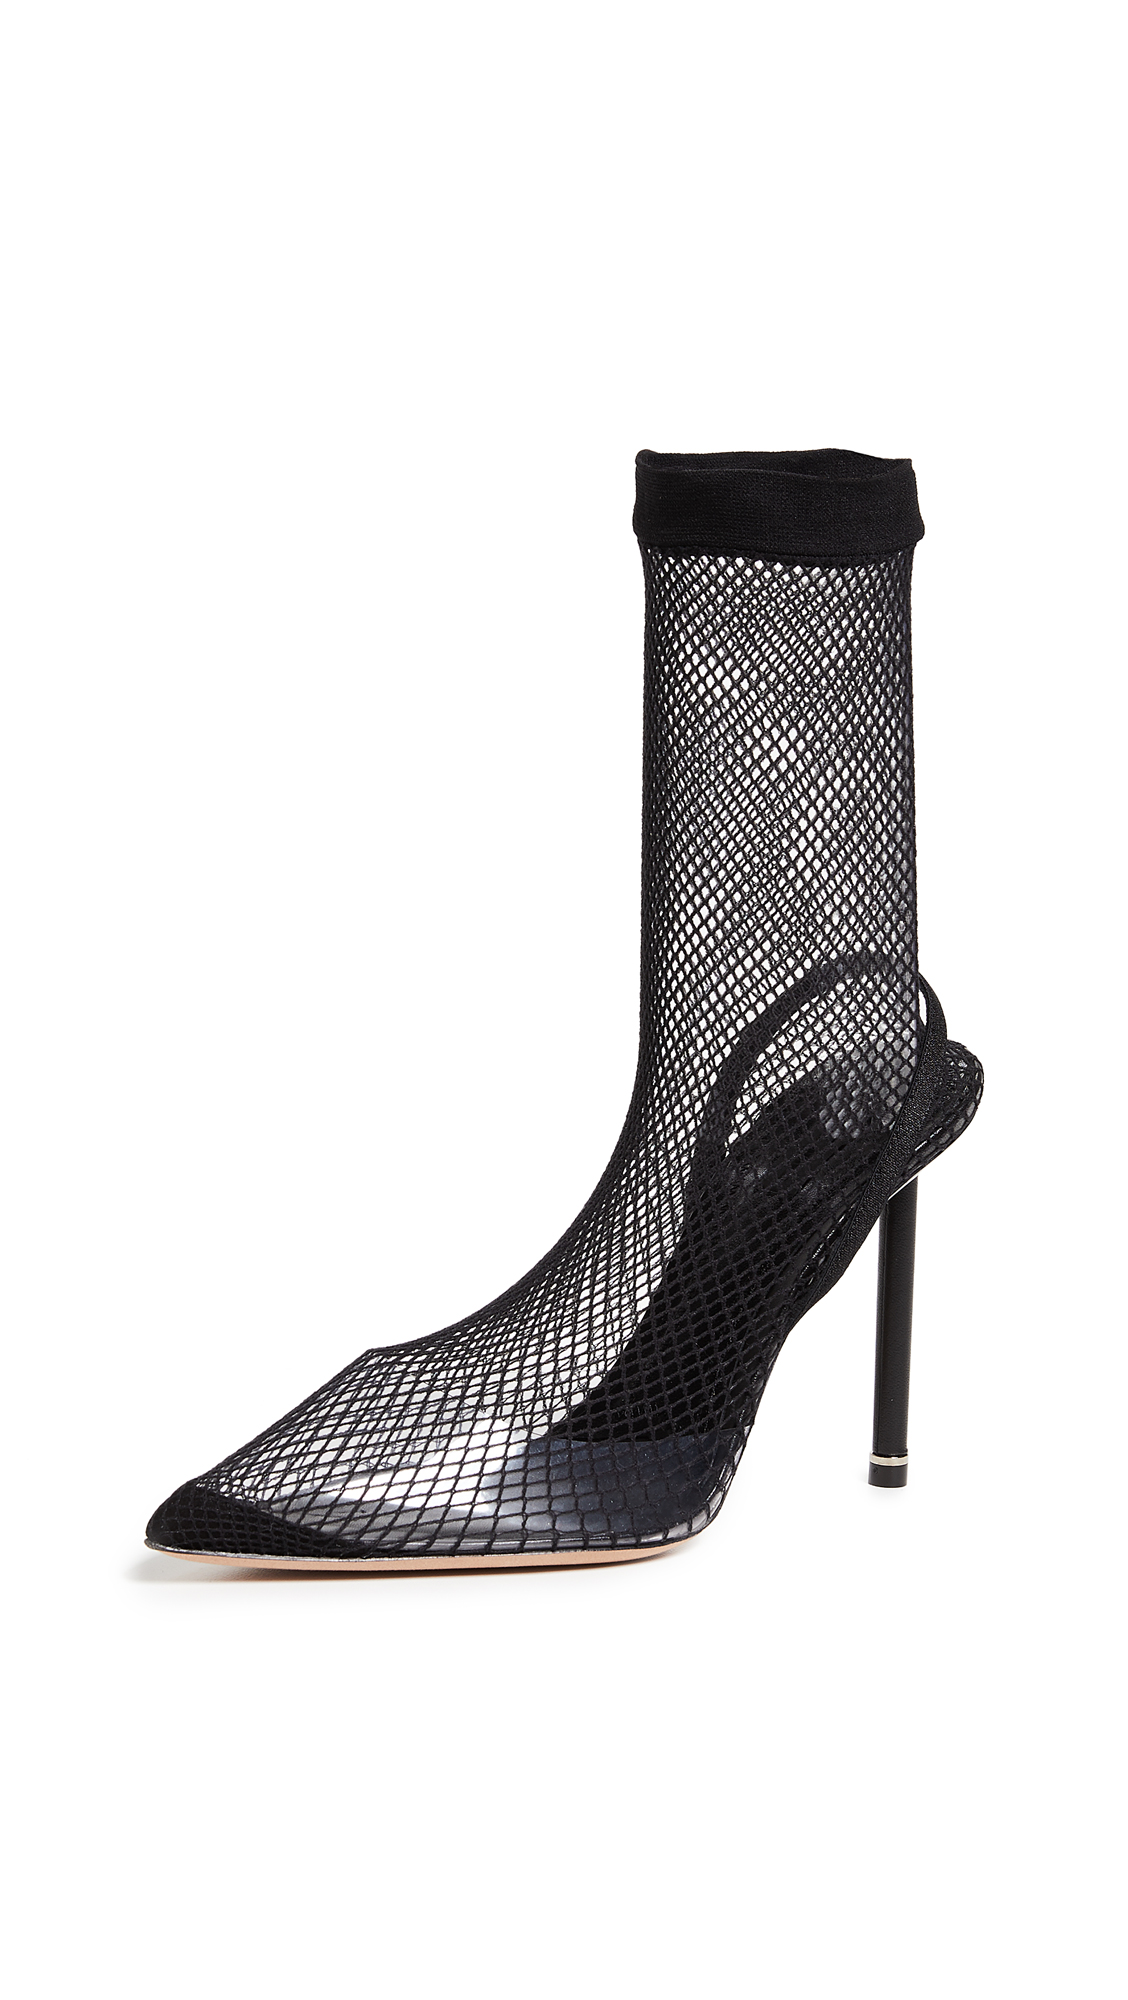 Alexander Wang Caden High Heel Booties - Black